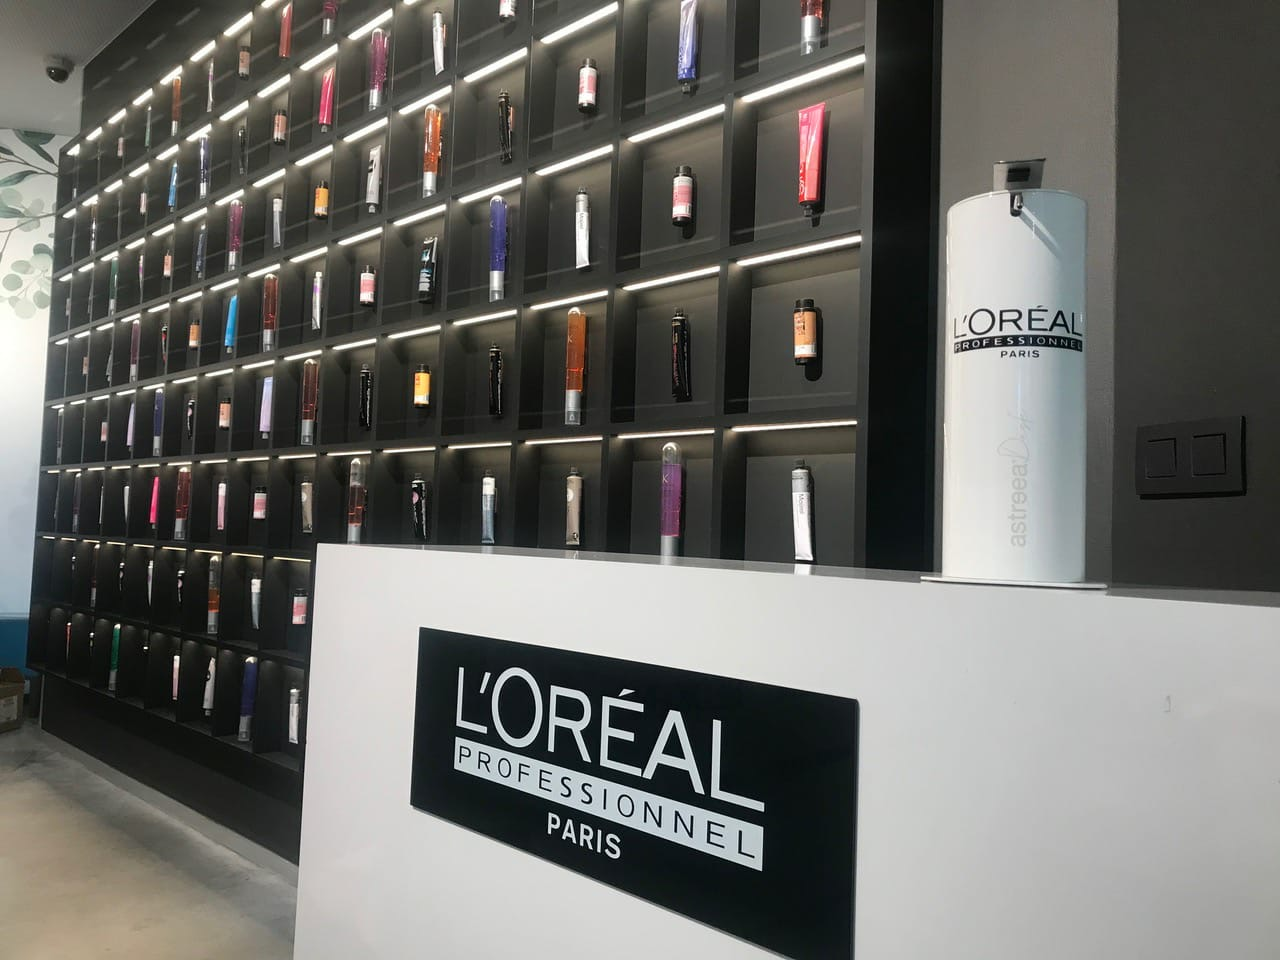 L'Oréal knows we're worth it, so it's introducing customised Astreea safety stations